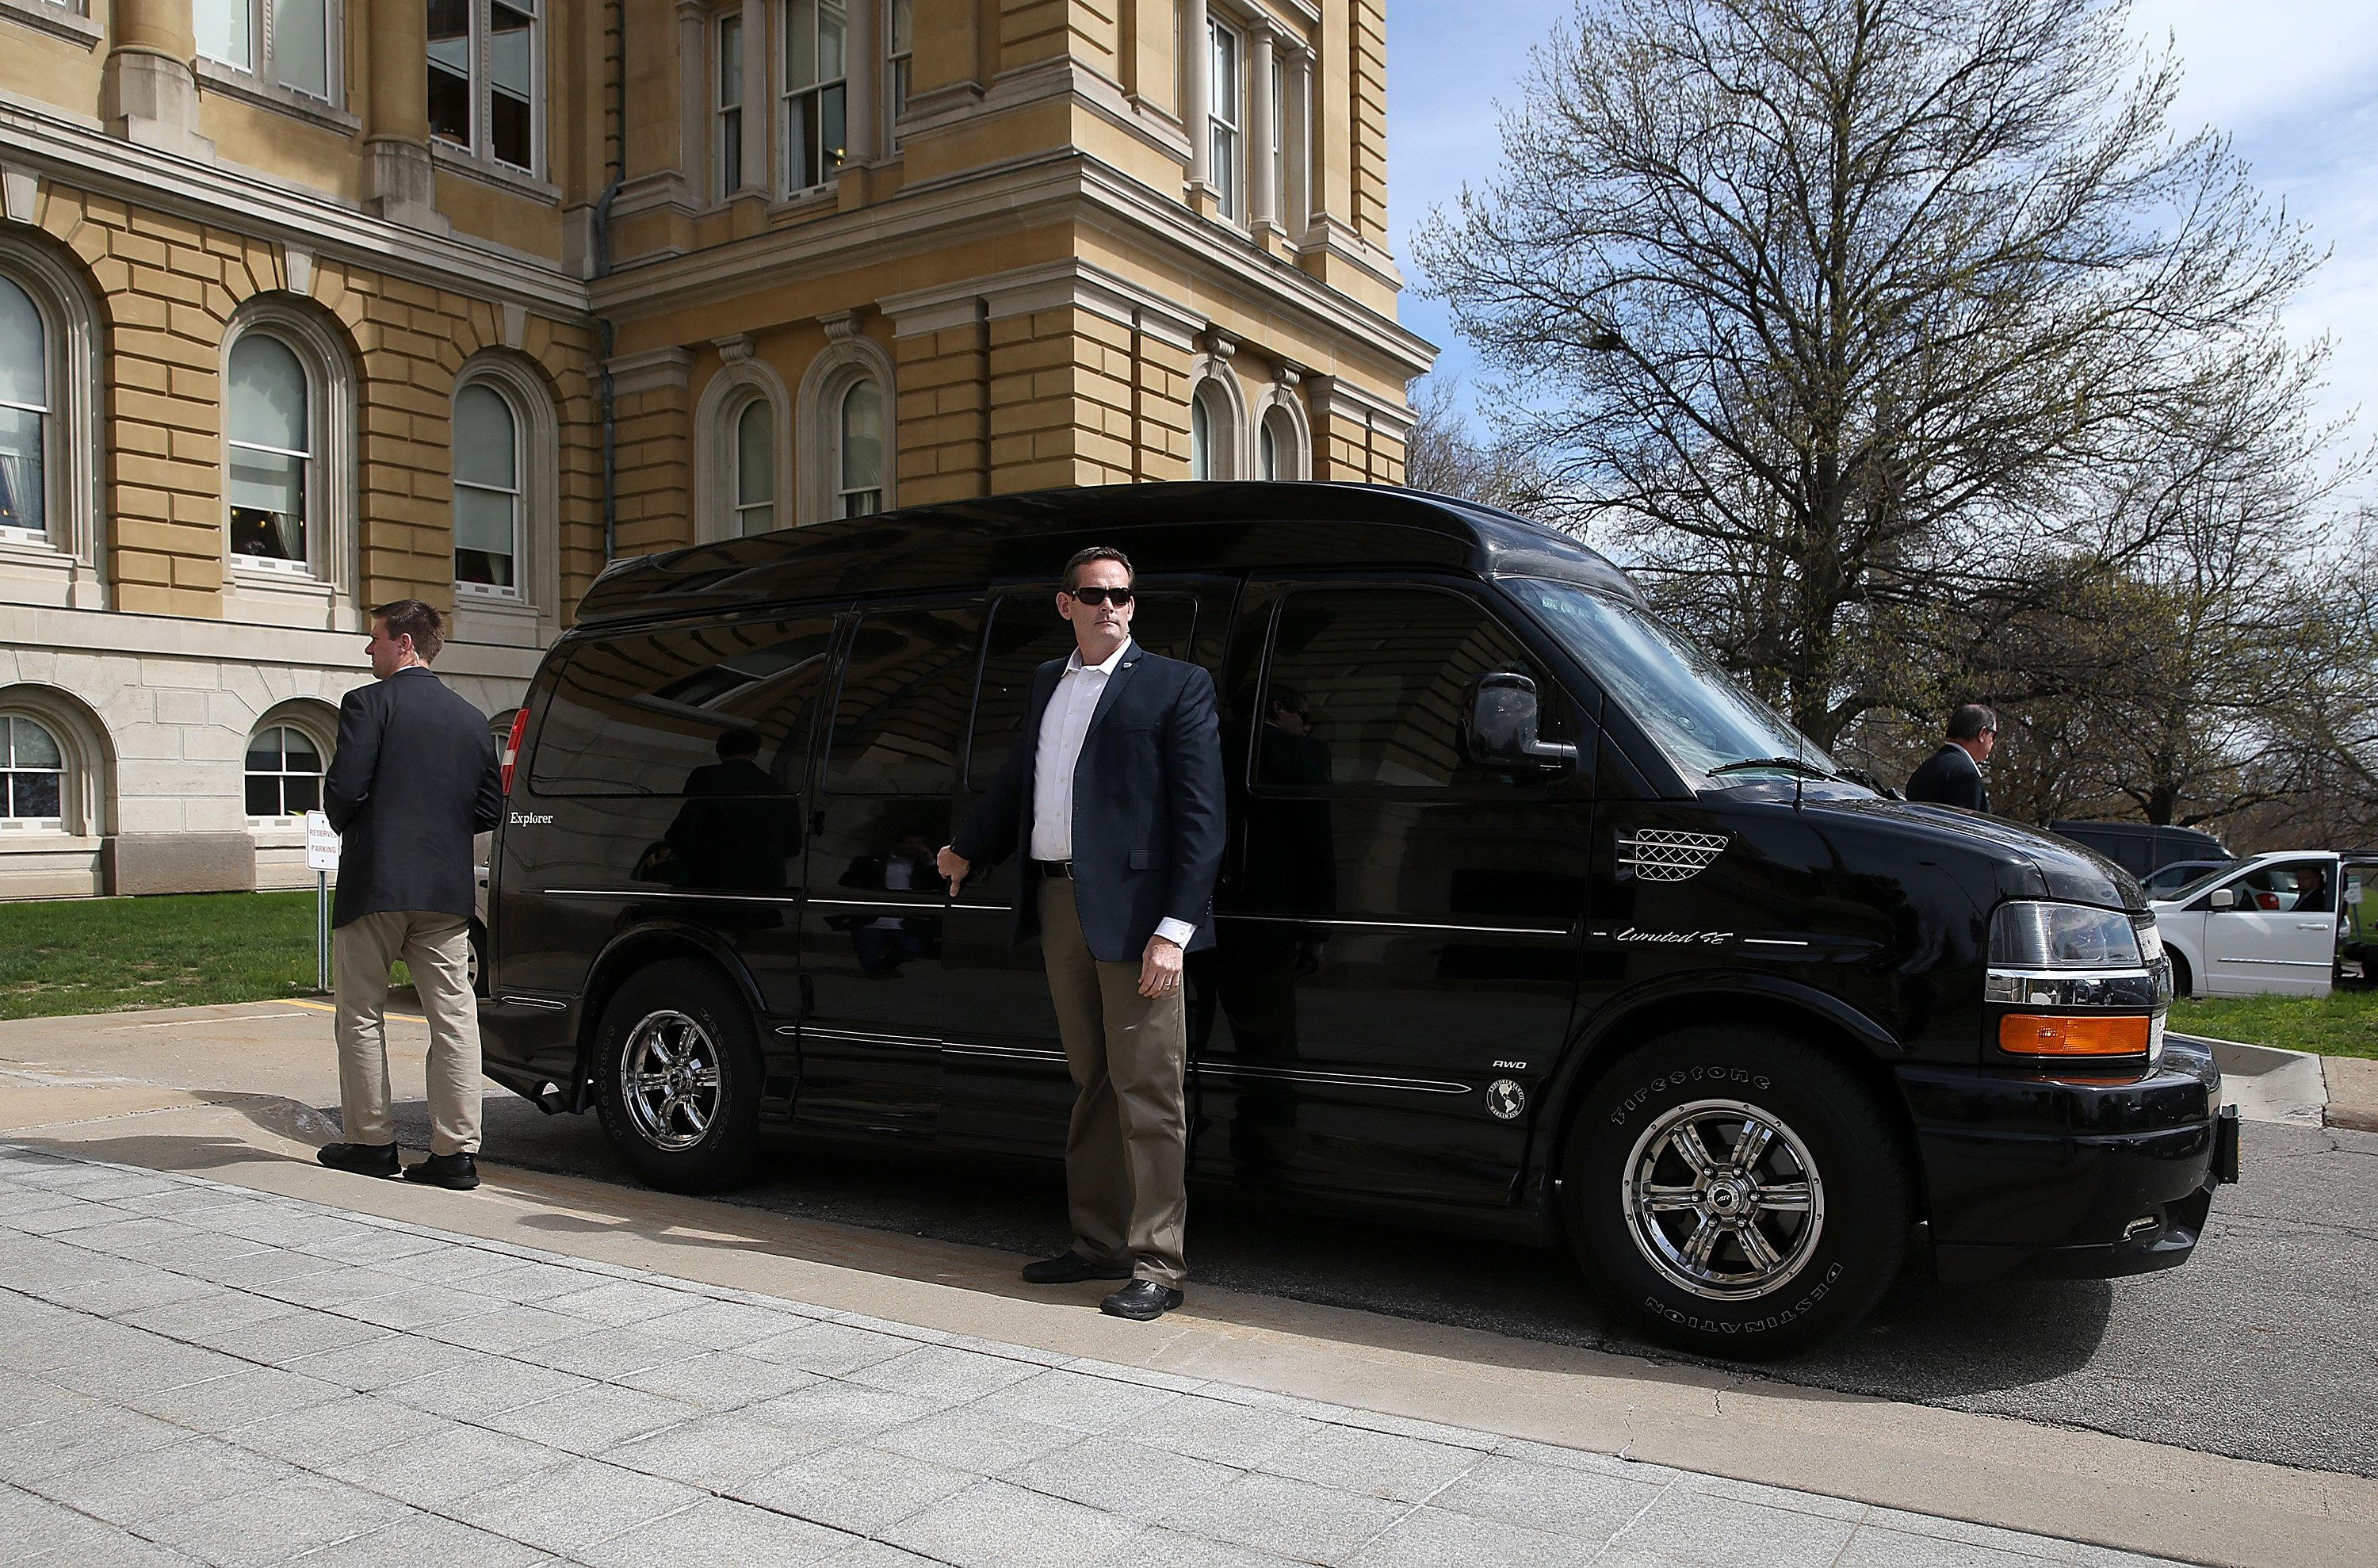 Des Moines, IA - April 15: Hillary Clinton began her 2016 campaign by driving from her house in Chappaqua, N.Y., to Iowa in a van instead of flying, as she did in 2008.